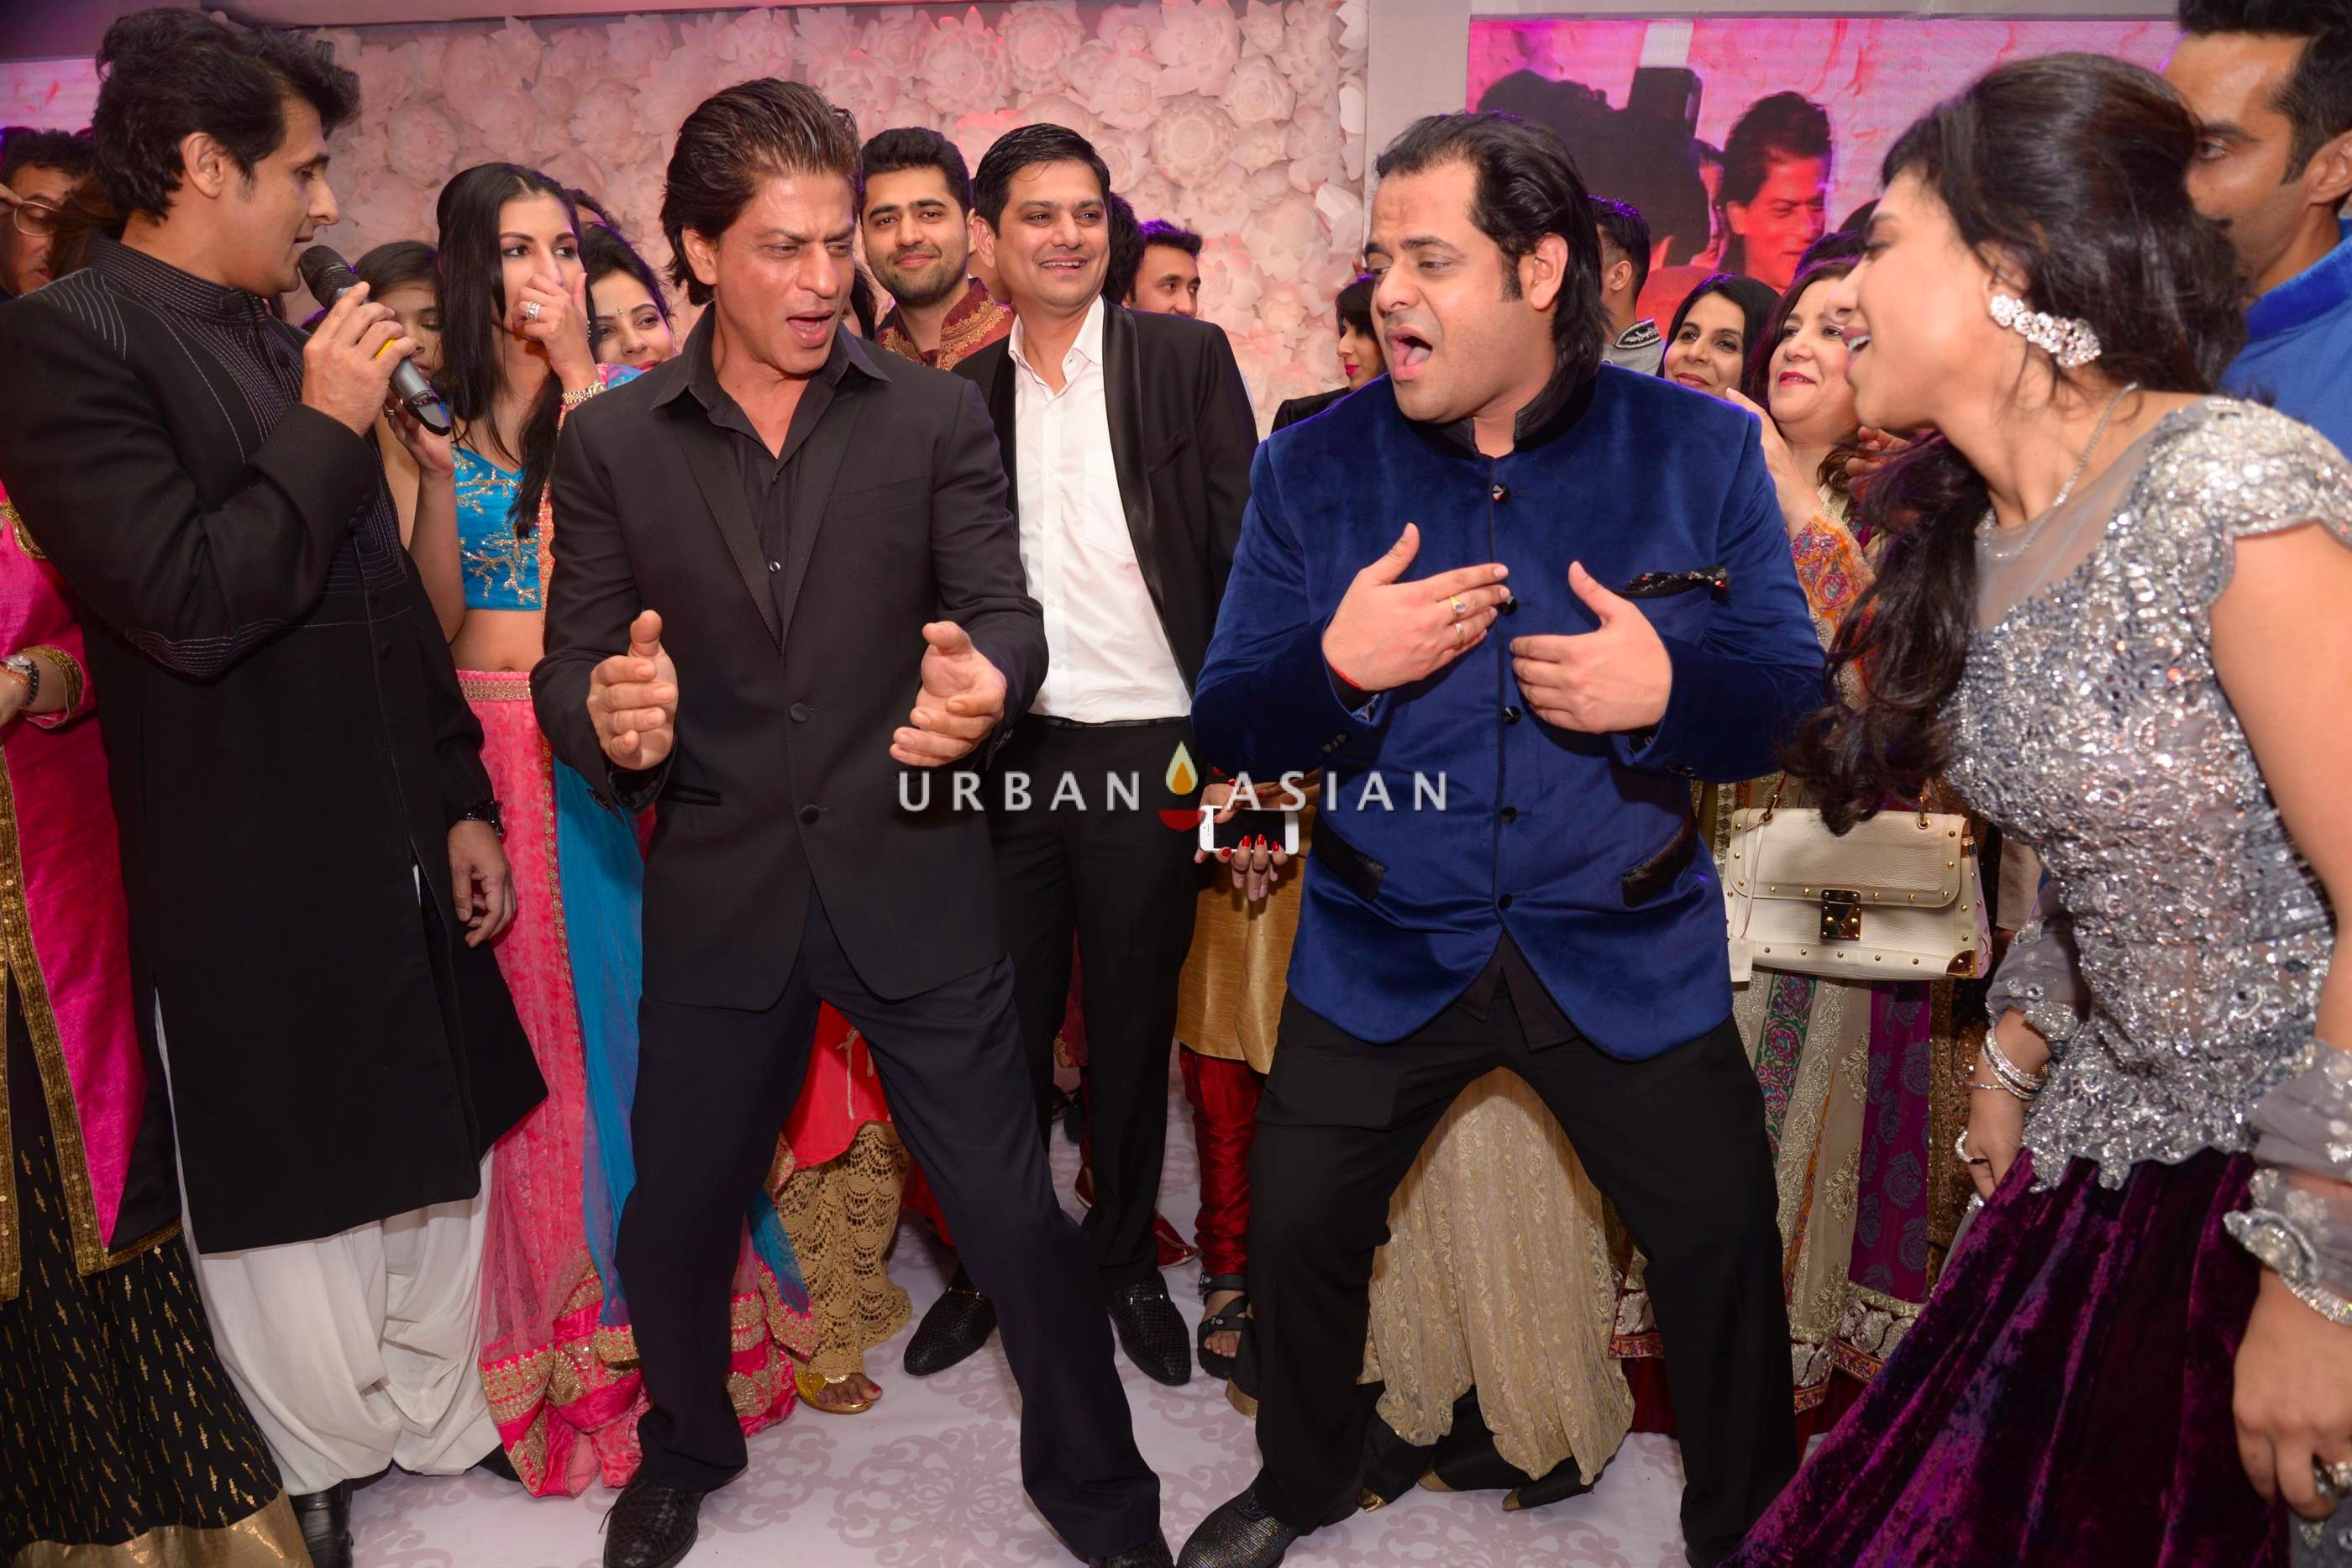 Shahrukh Khan performing with couples12